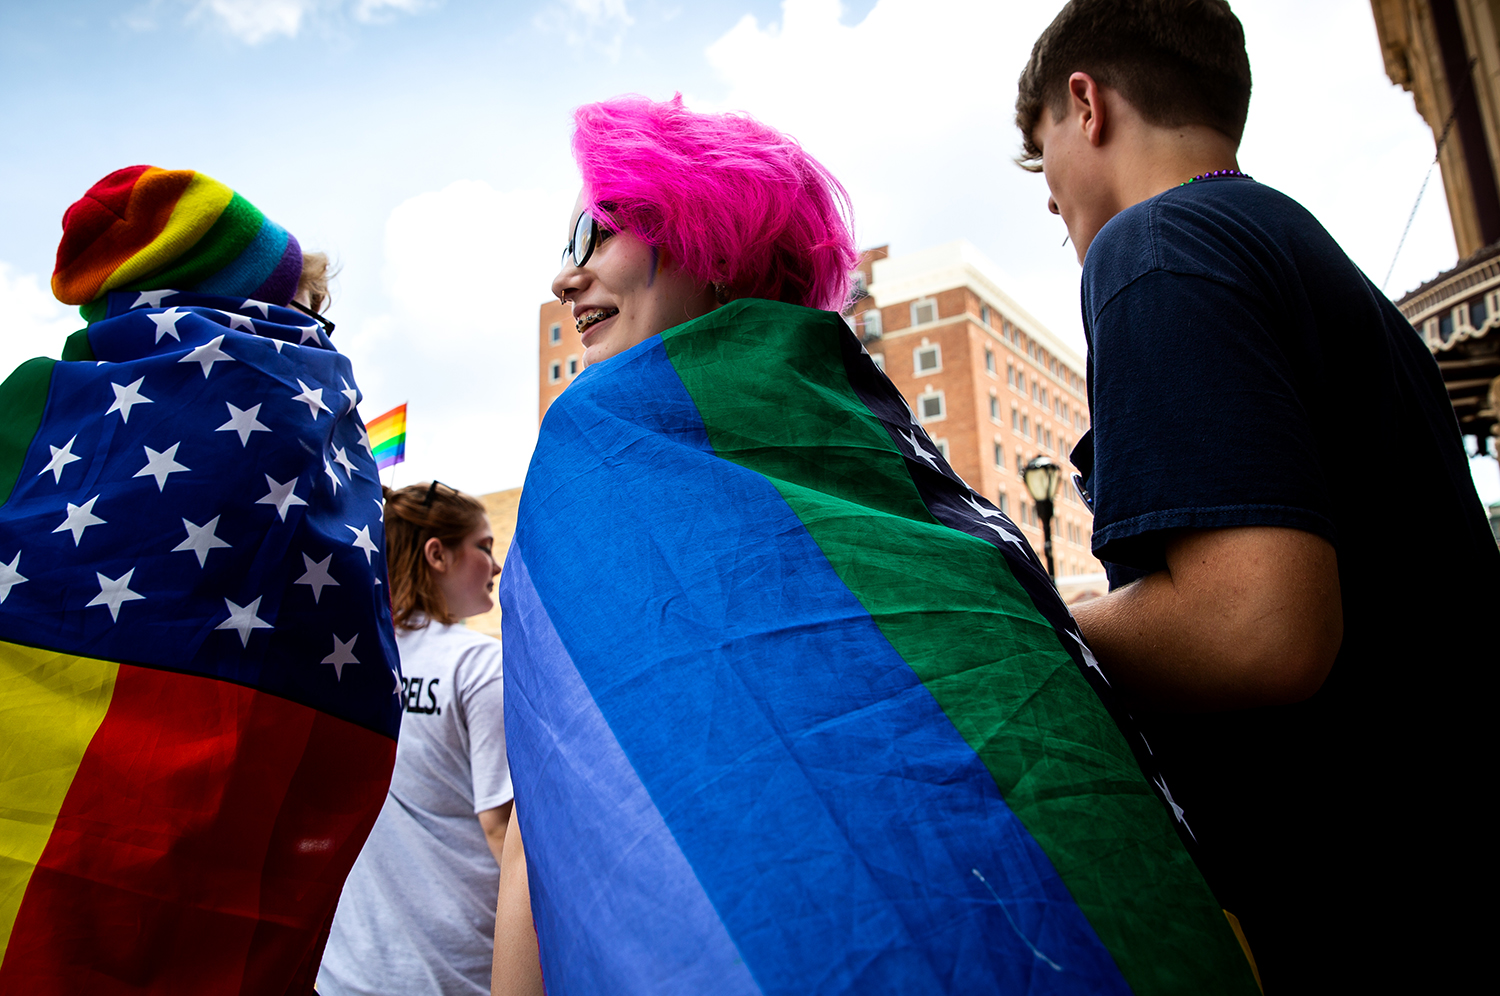 Emmorie Brown, left, Trinity Neuhaus and Joe Dipasquale hang out at Springfield's PrideFest parade and street party Saturday, May 19, 2018 at Fourth Street and Capitol Avenue in Springfield, Ill. [Rich Saal/The State Journal-Register]